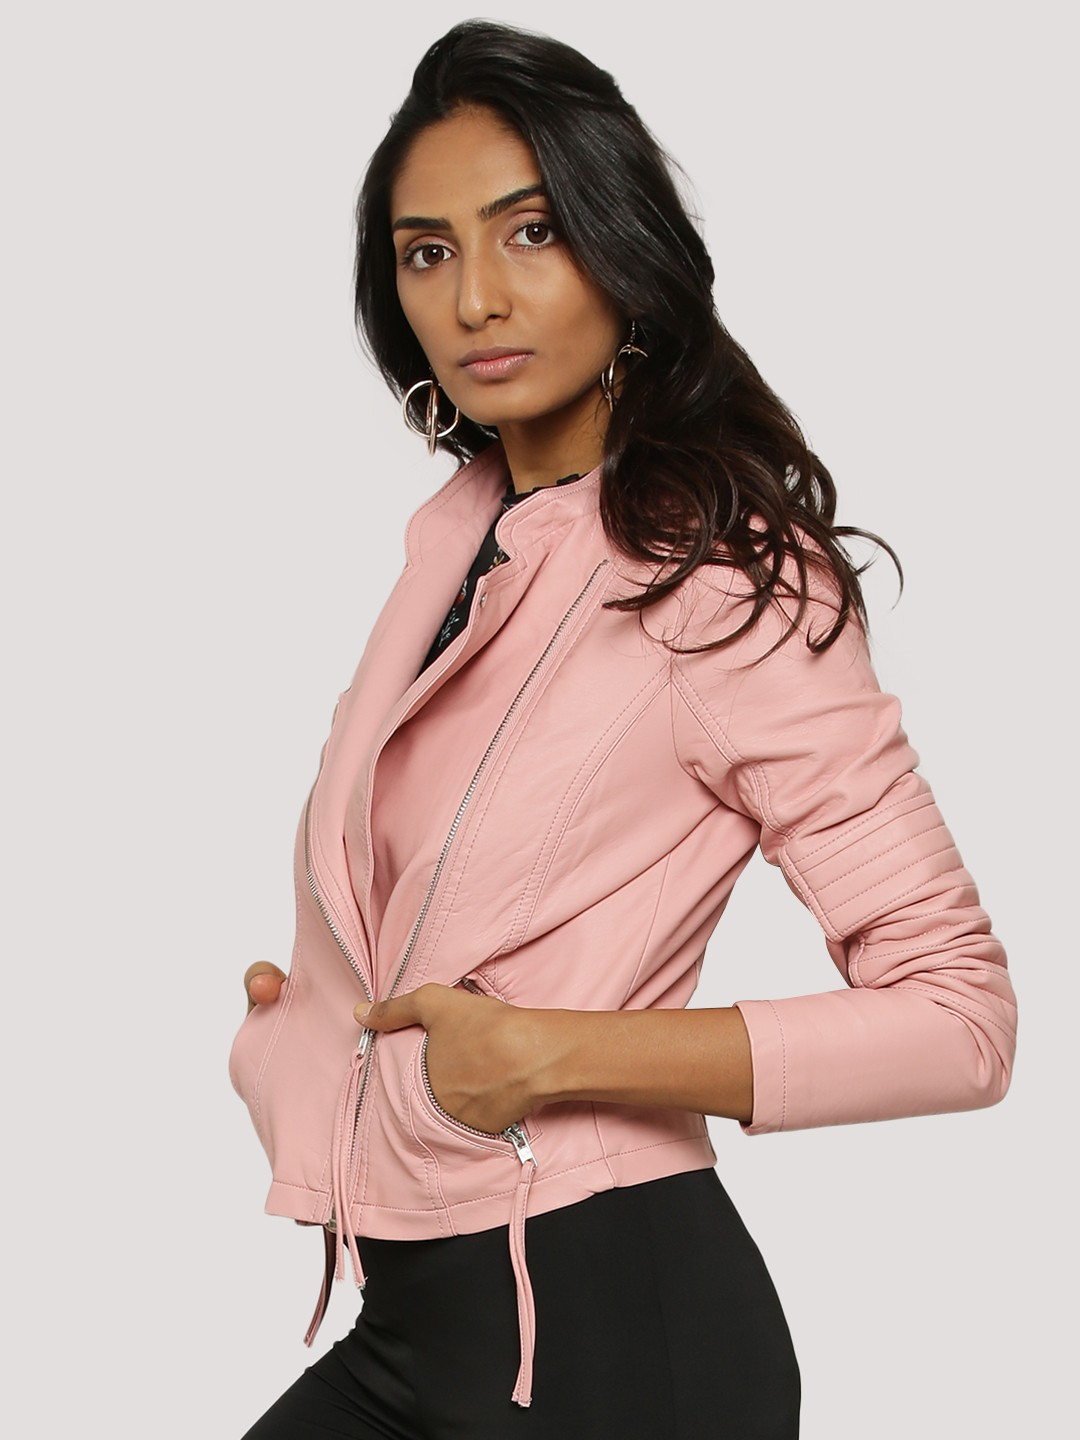 buy vero moda short pu jacket for women women 39 s pink jackets online in india. Black Bedroom Furniture Sets. Home Design Ideas